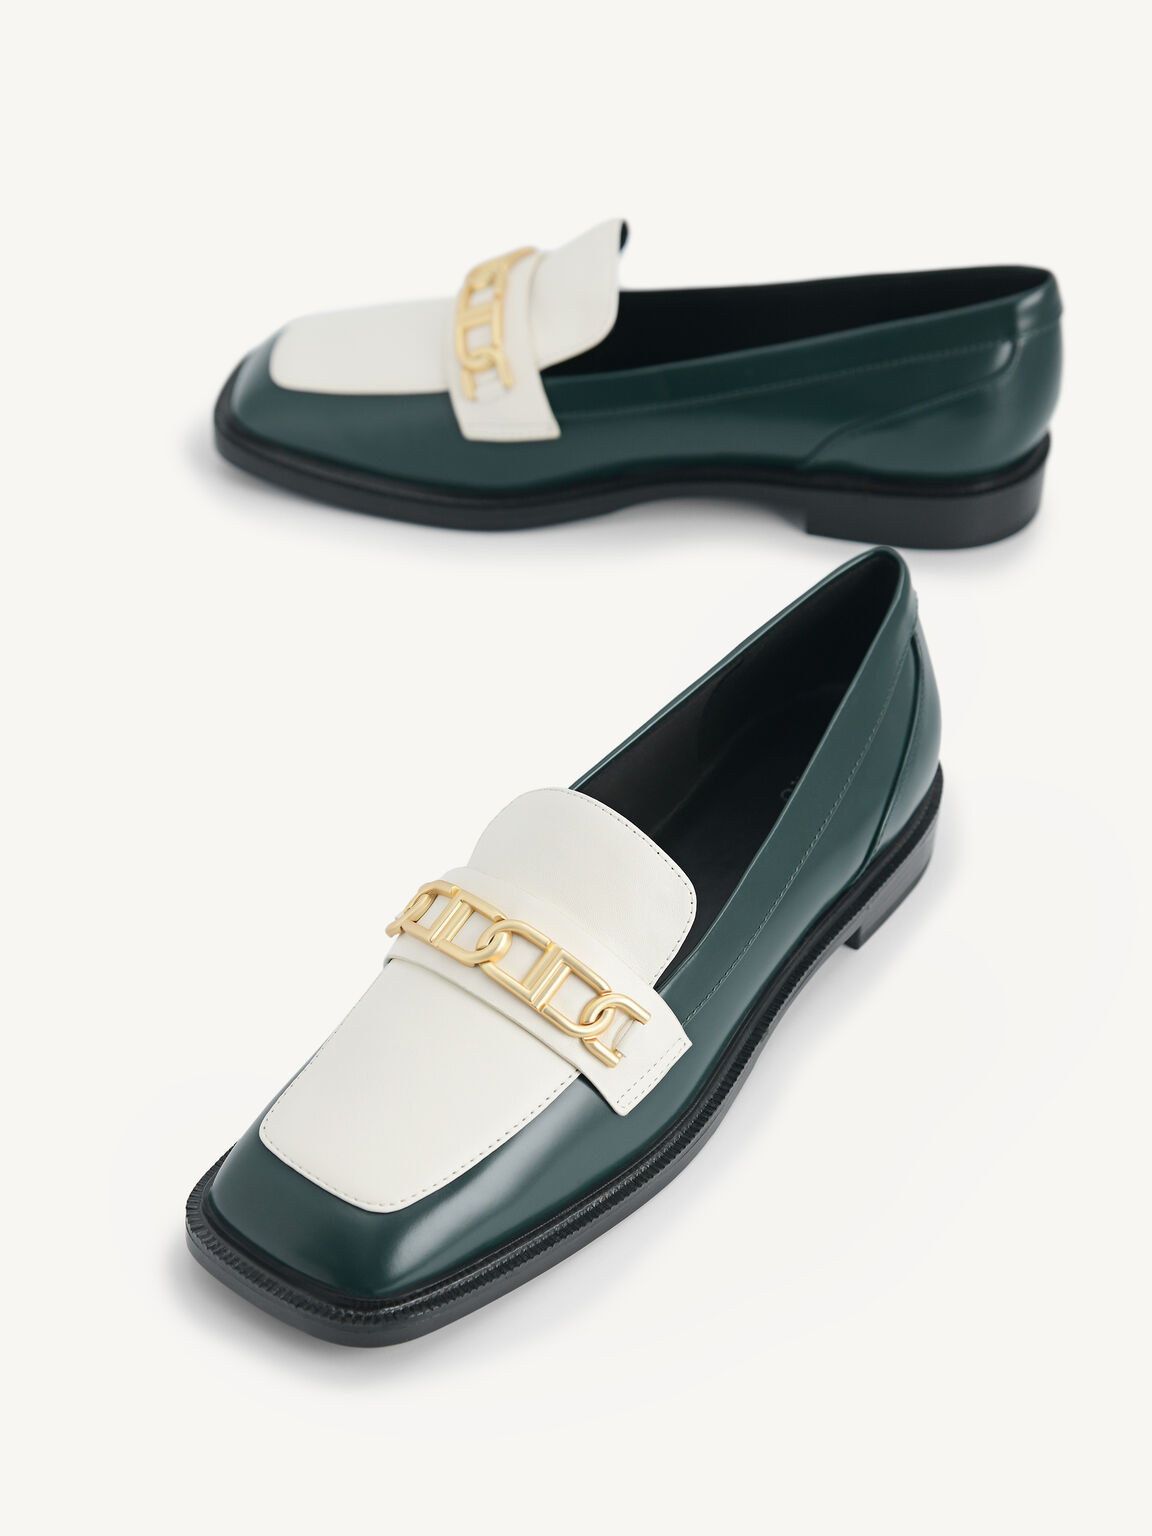 Icon Leather Square Toe Loafers, Dark Green, hi-res